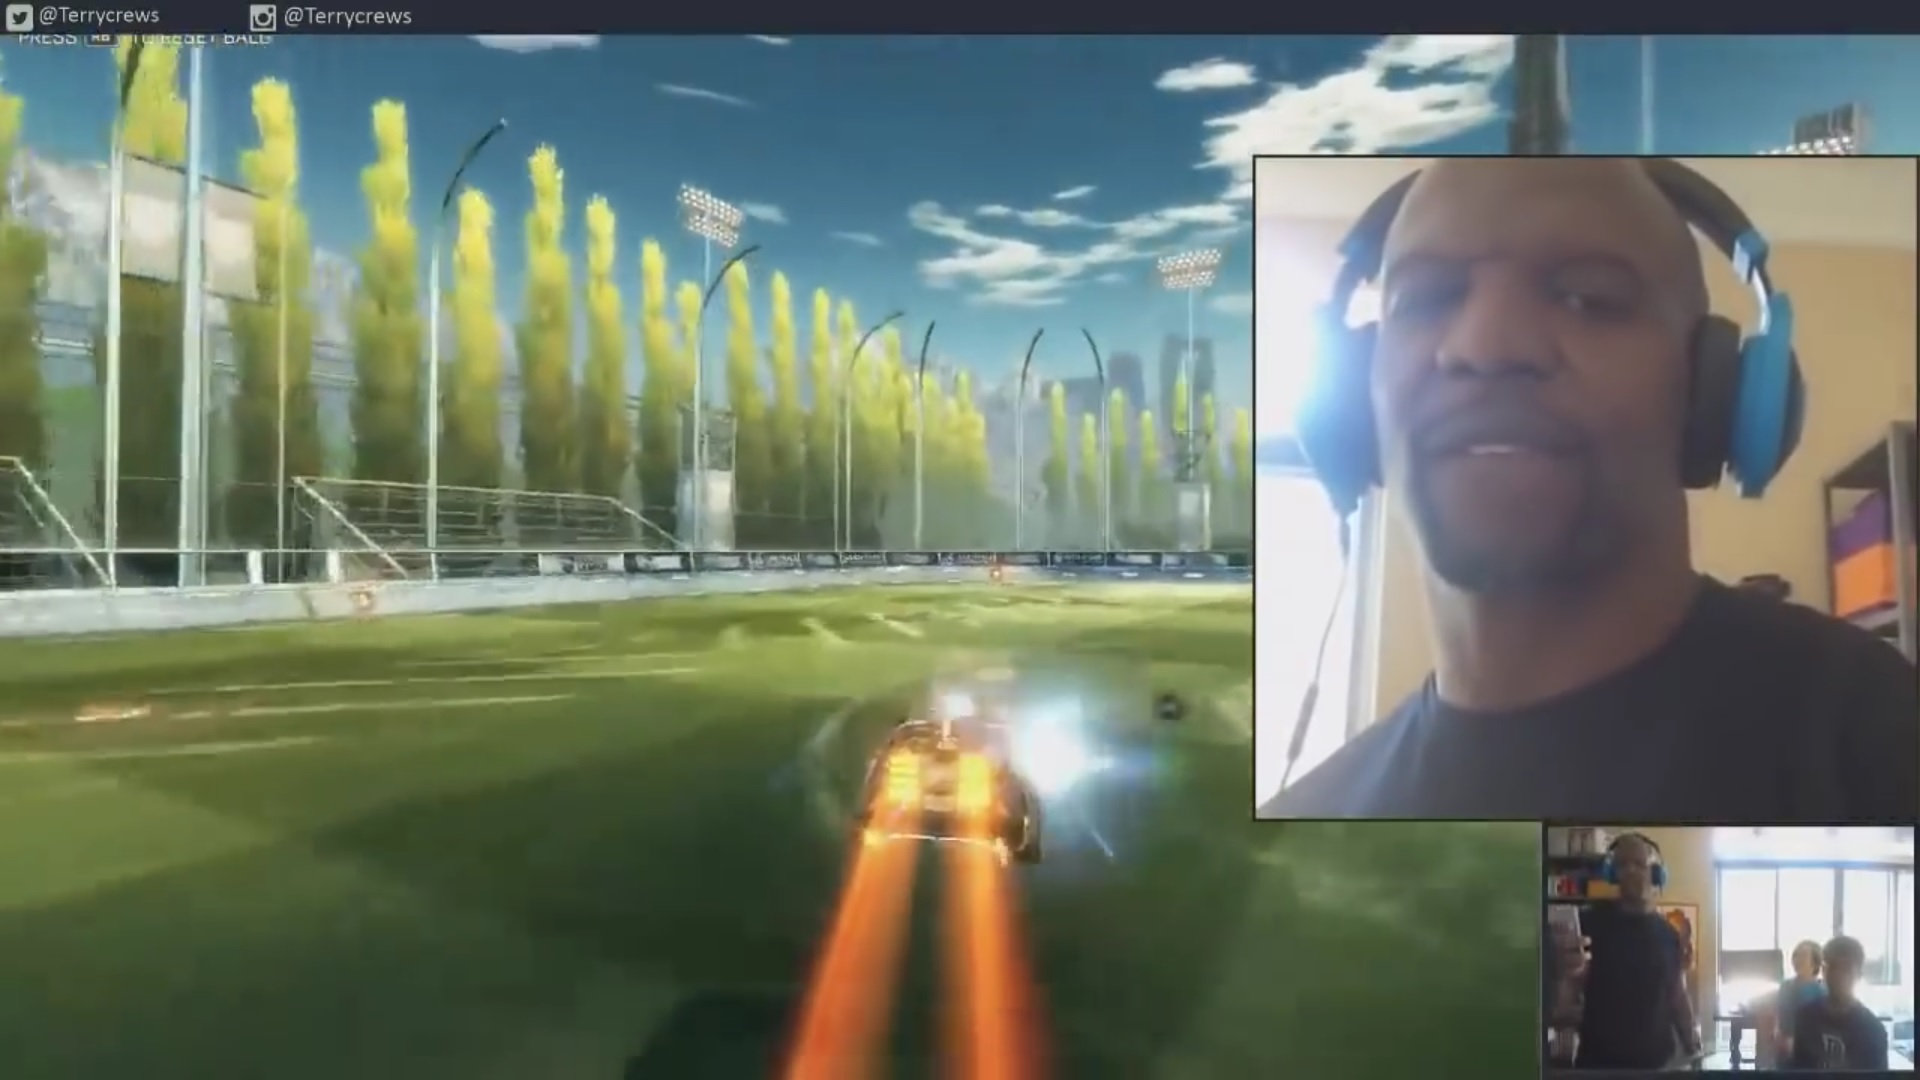 Terry Crews' Playing Rocket League (Photo: YouTube)